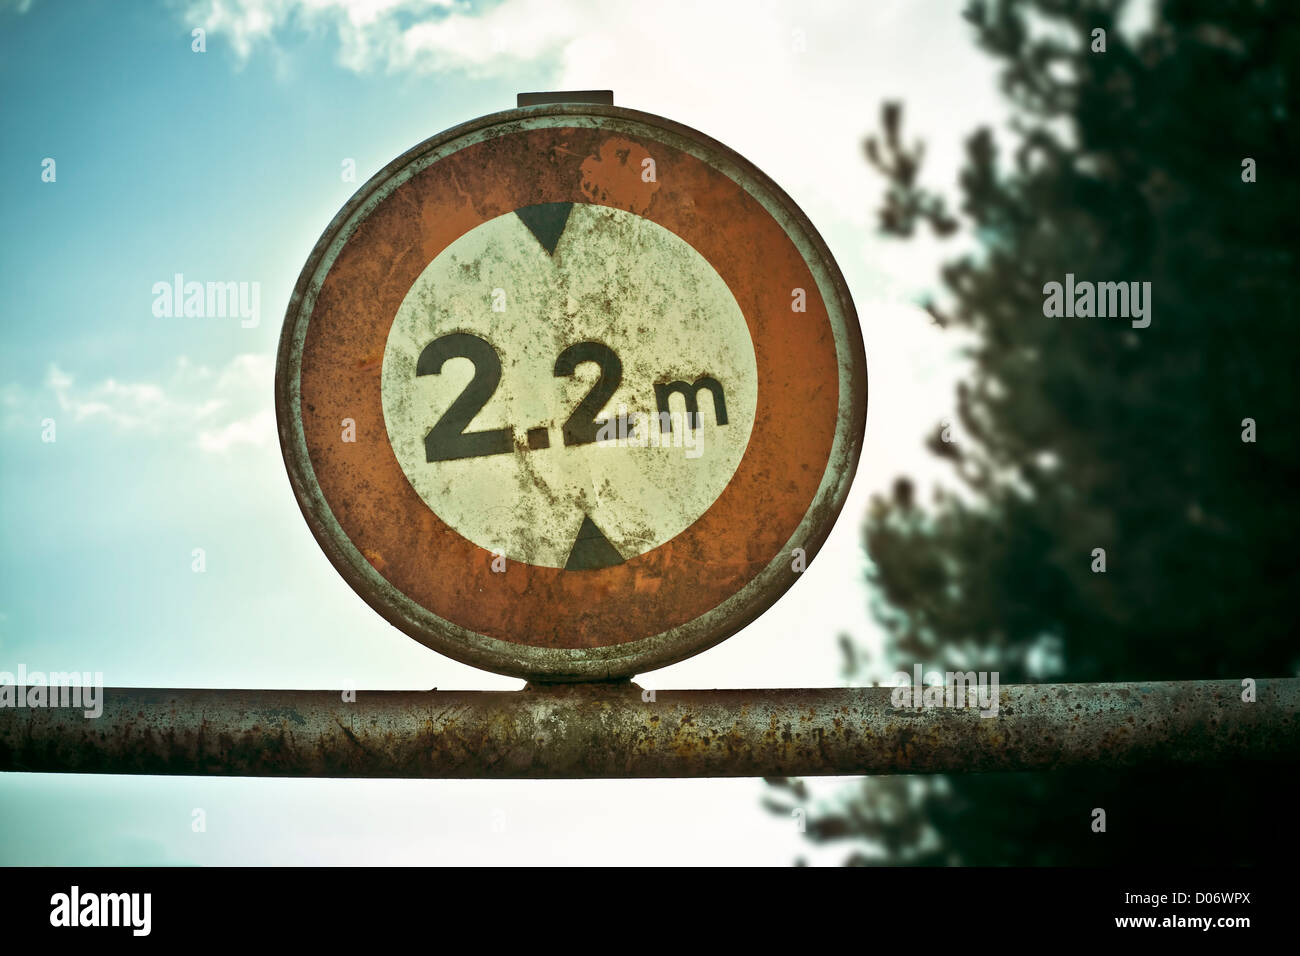 Height restriction sign on metal pole. - Stock Image